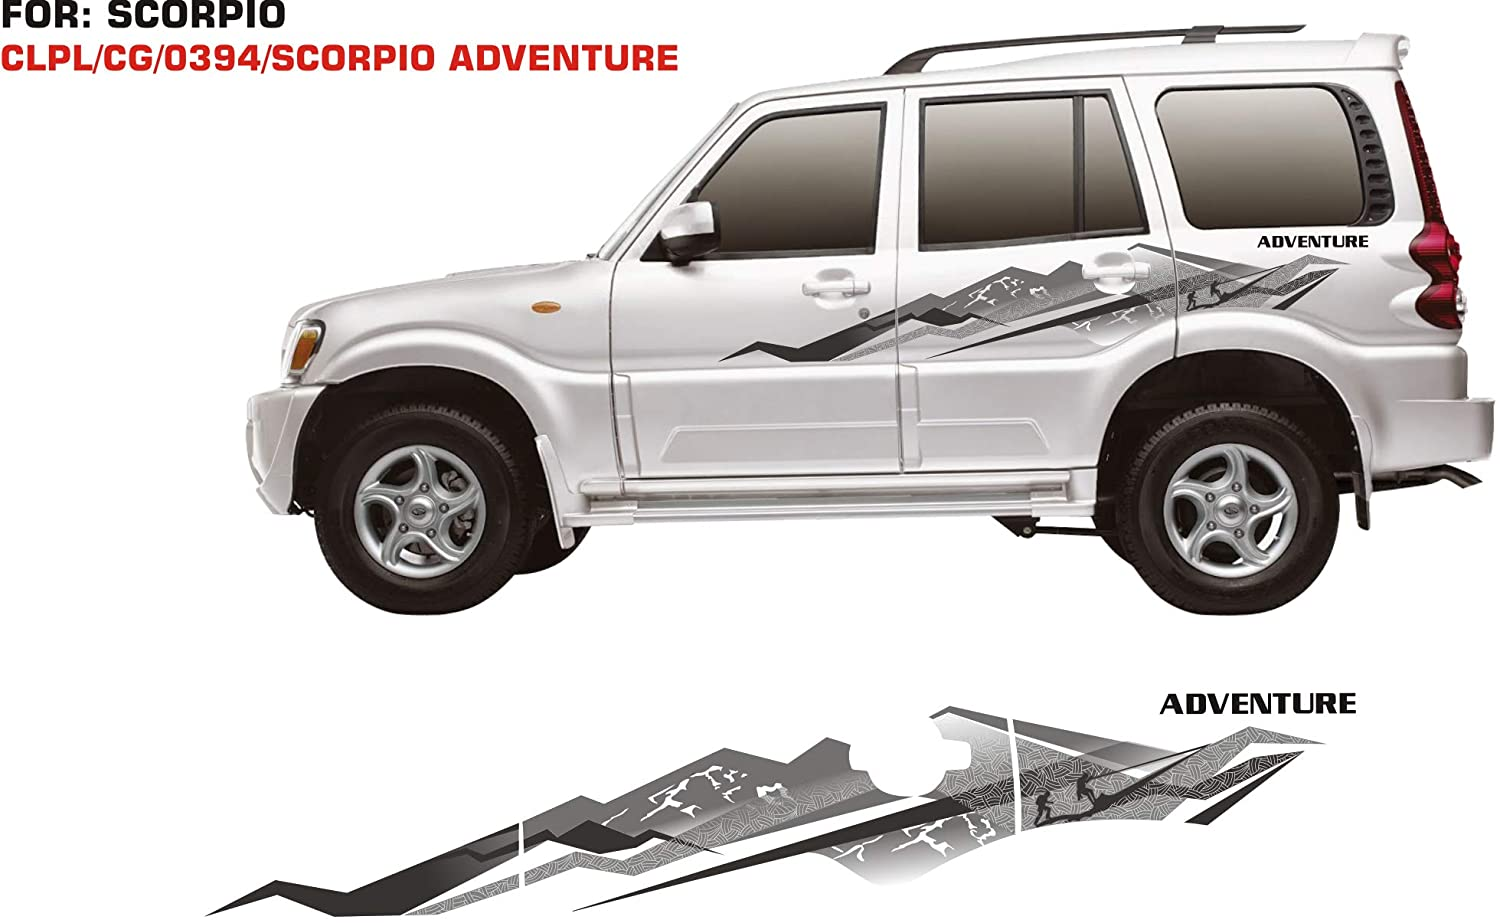 Automaze car side decal full body sticker graphics for scorpio all models multi color both sides adventure graphics 0394 amazon in car motorbike